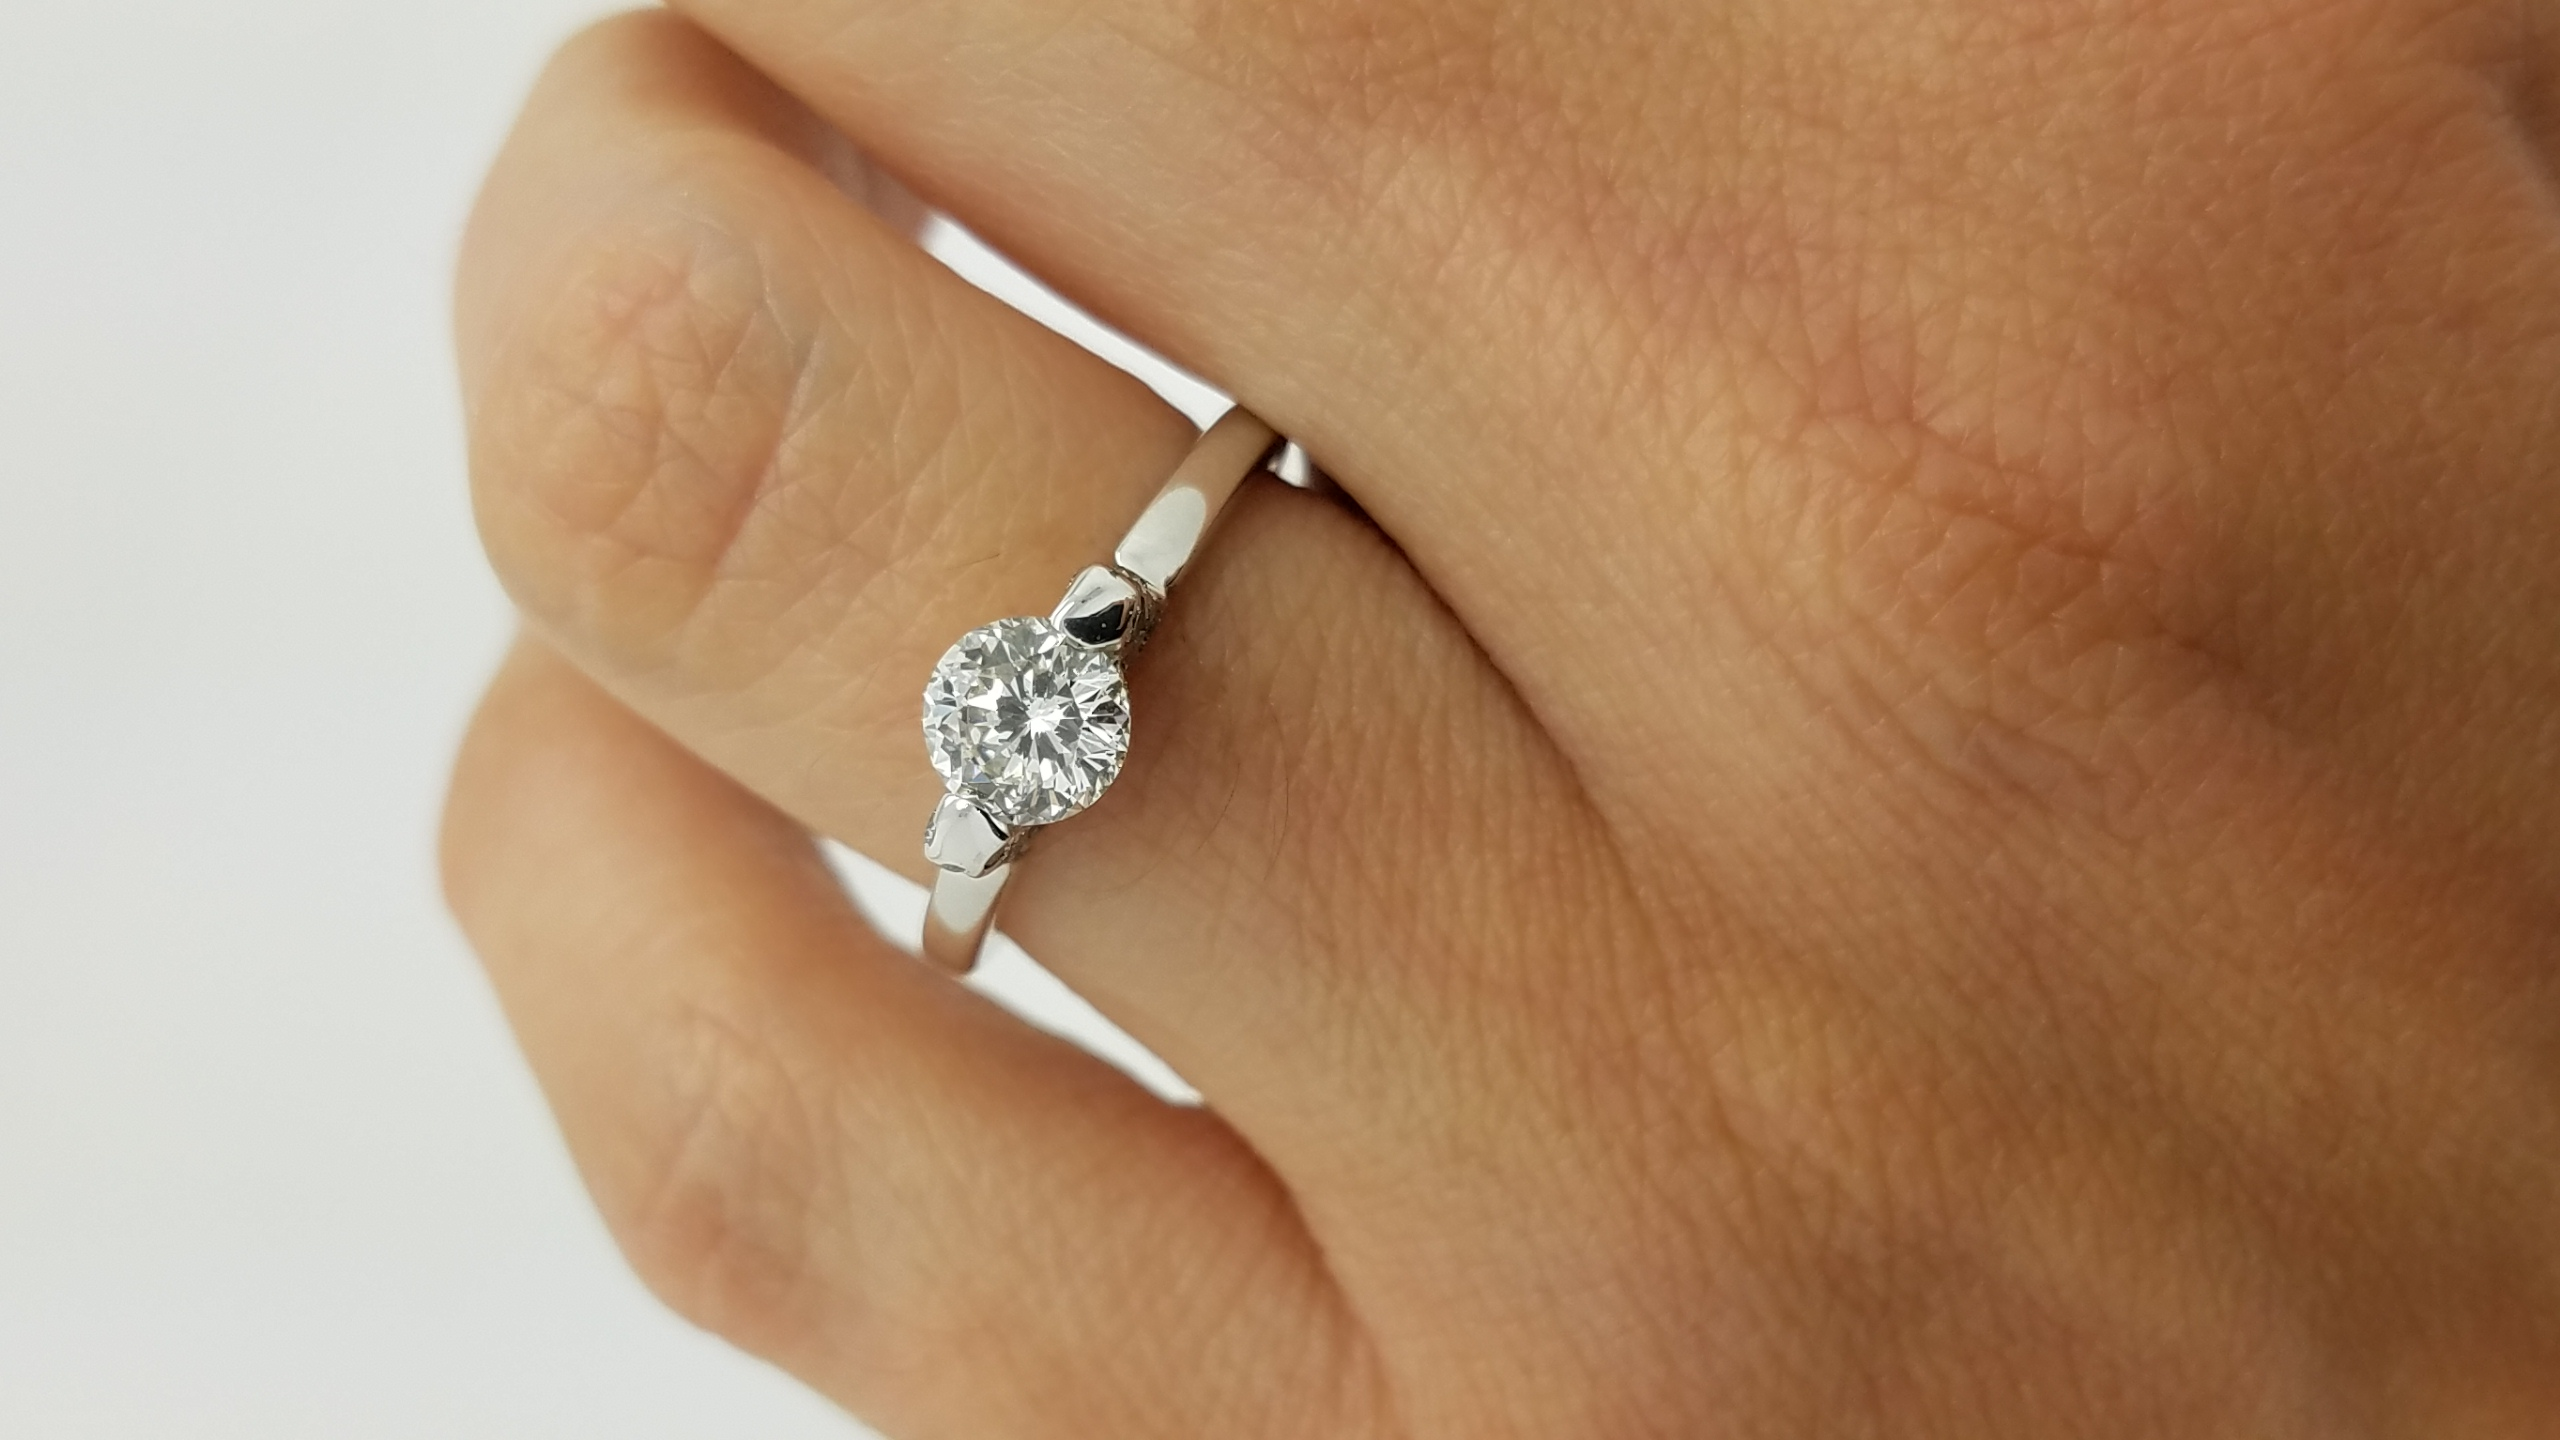 18K	White Gold	Floating	0.74+0.30	ct.	Round	Cut	Dia	G	VS2	Flush-Set	Solitaire with Accents	Engagement-Ring